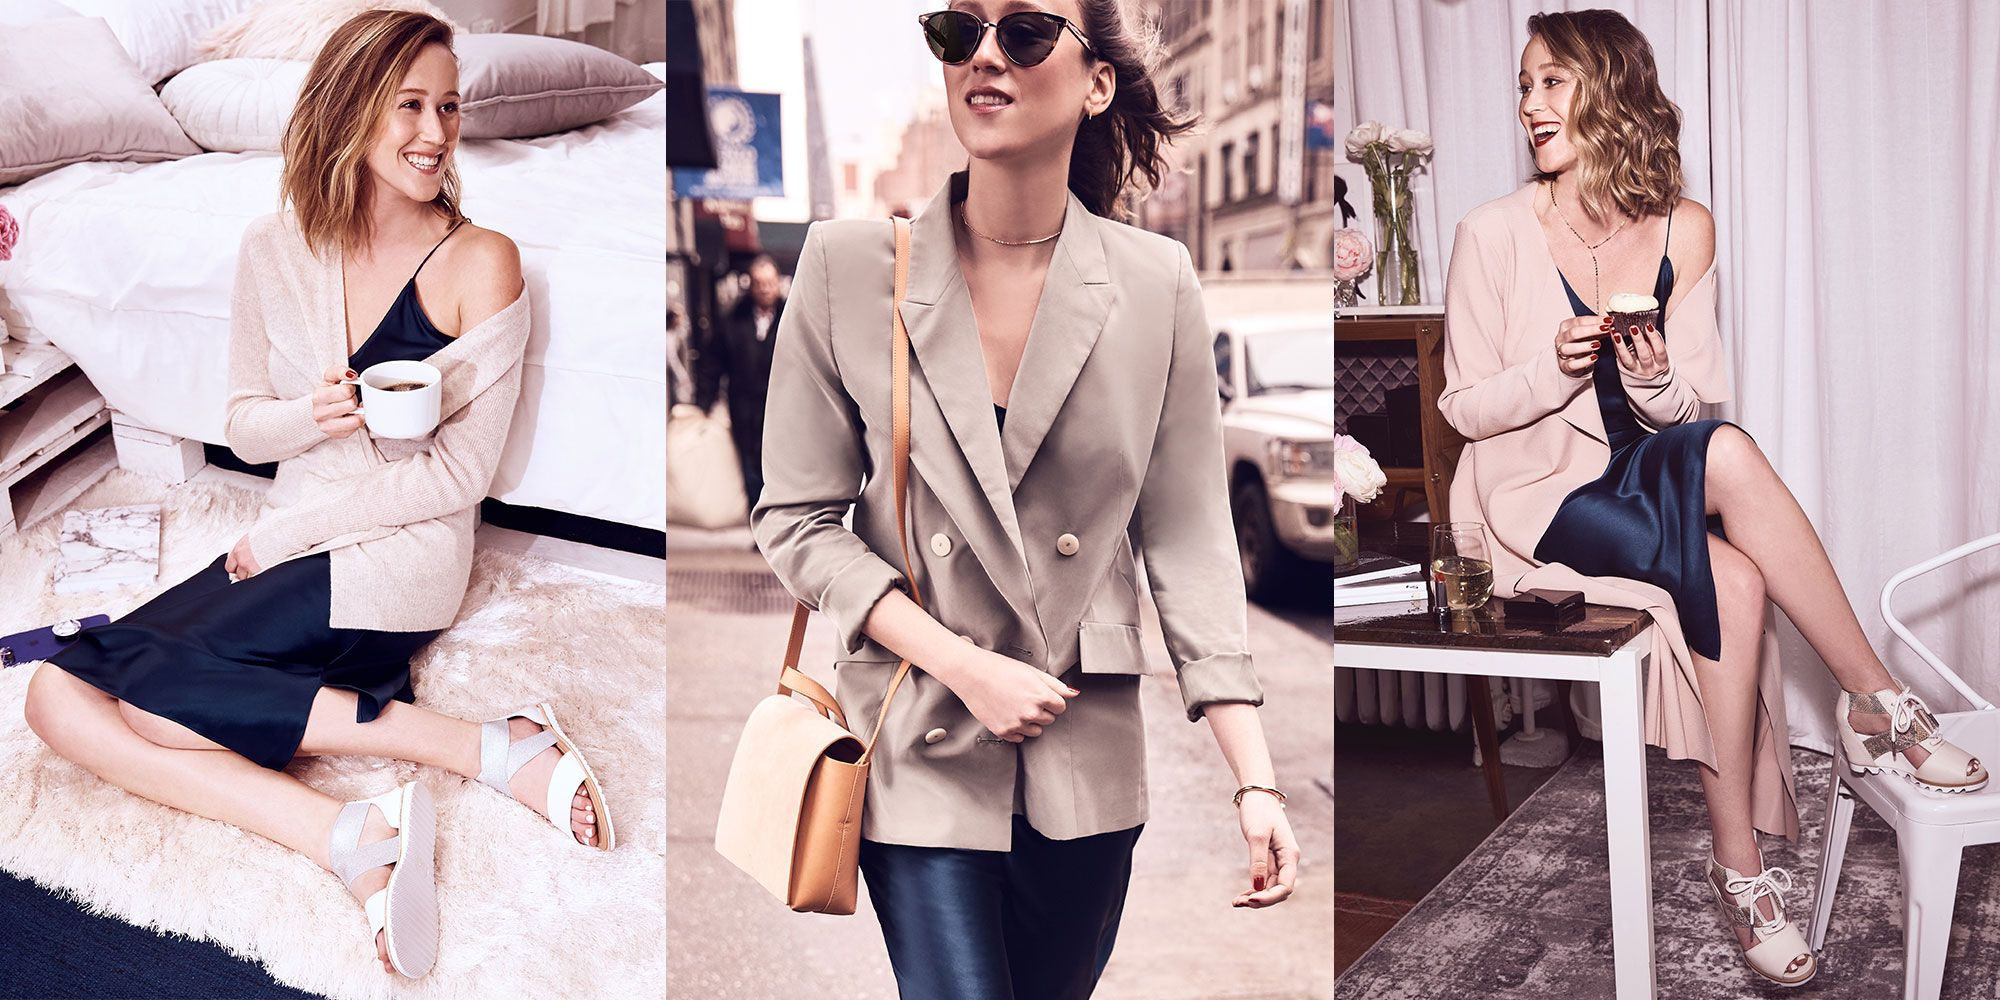 Rosa jacke outfit